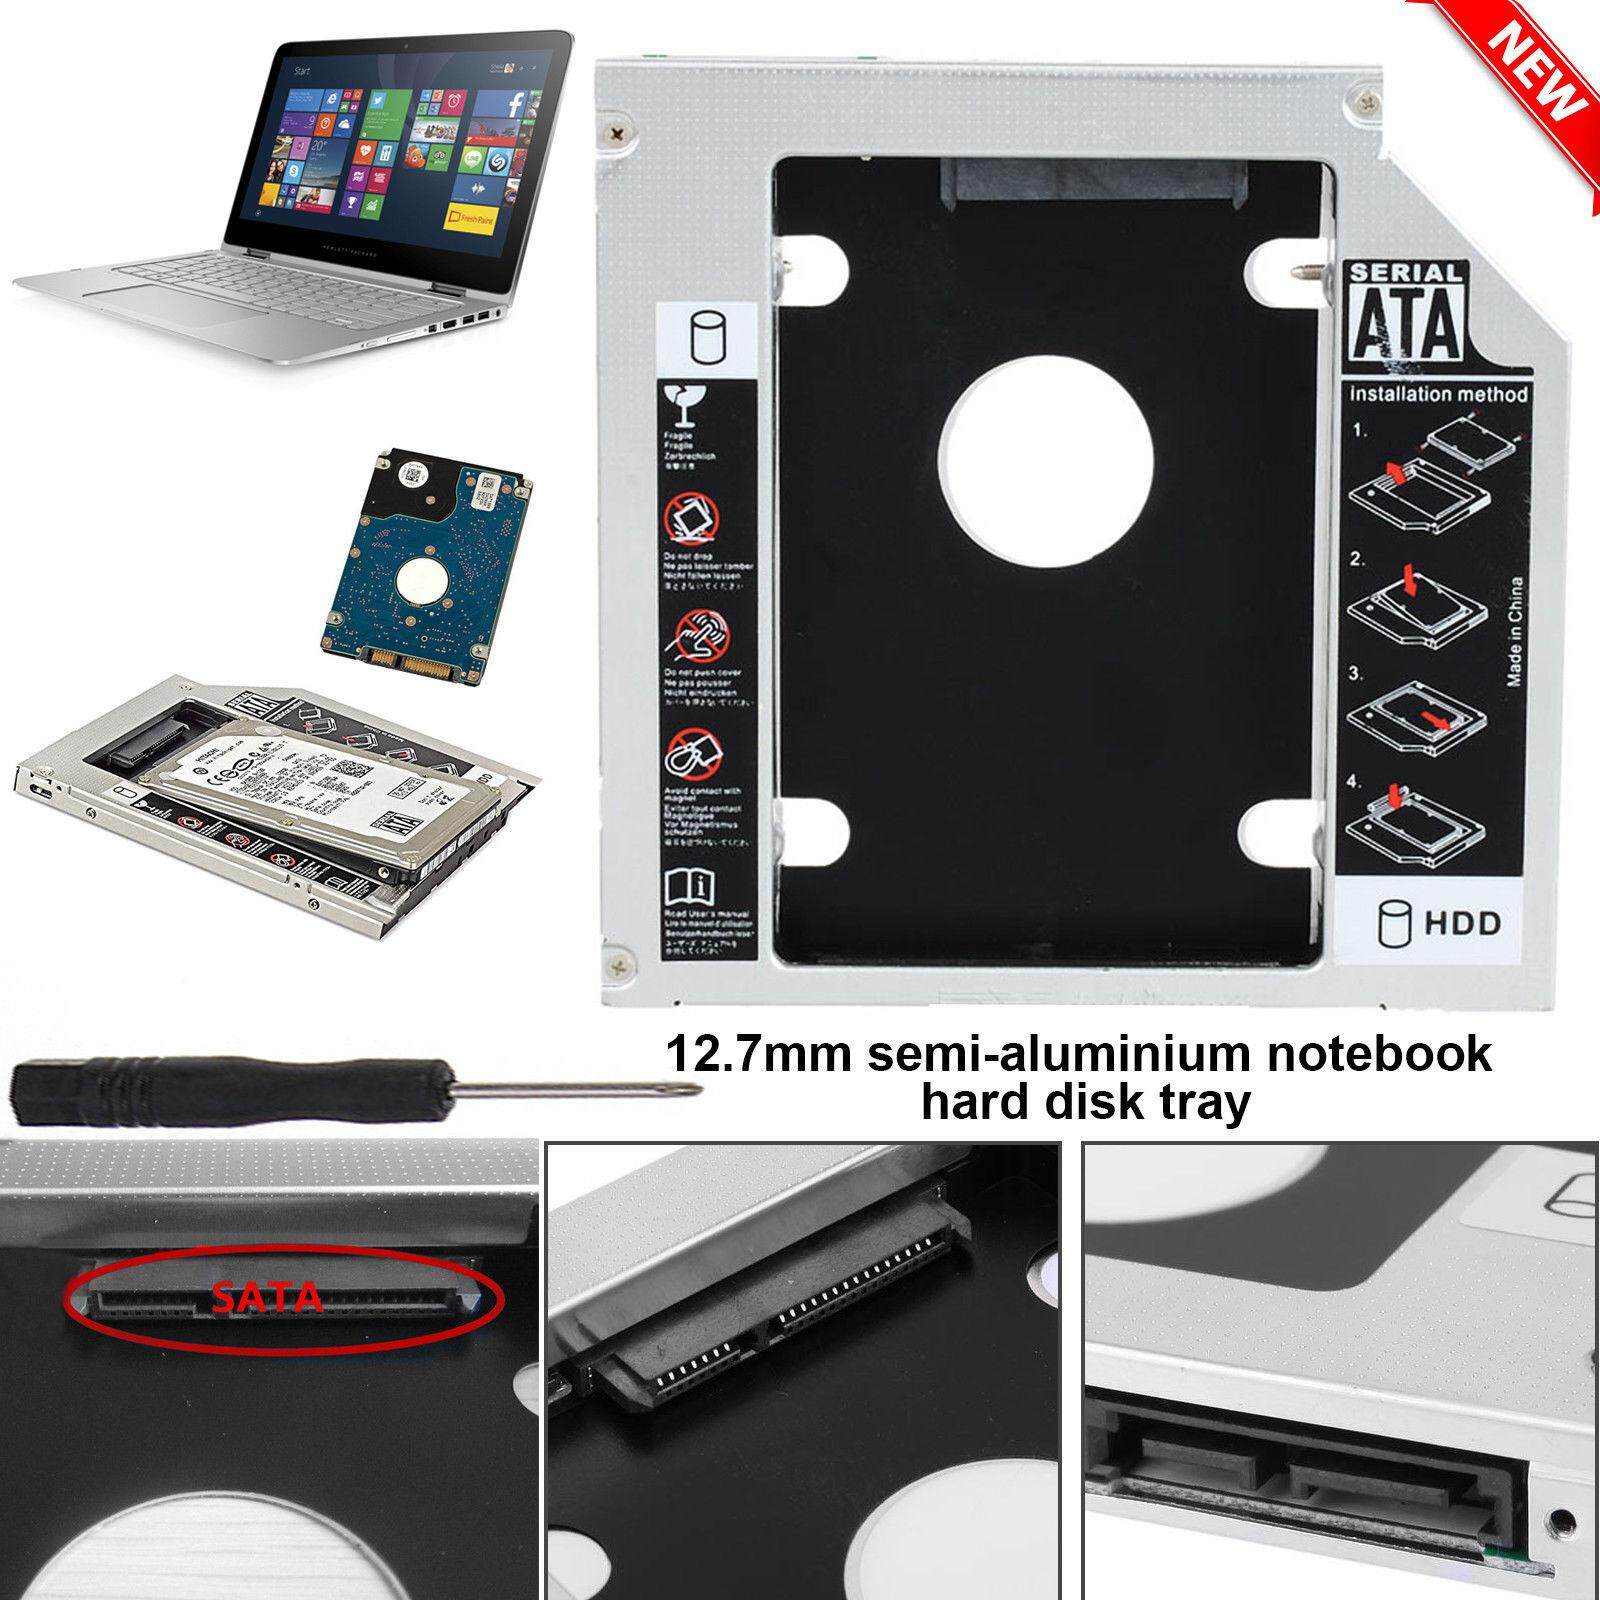 ถาดแปลง ใส่ HDD SSD ในช่อง DVD Notebook 12.7 mm Universal SATA 2nd HDD SSD Hard Drive Caddy